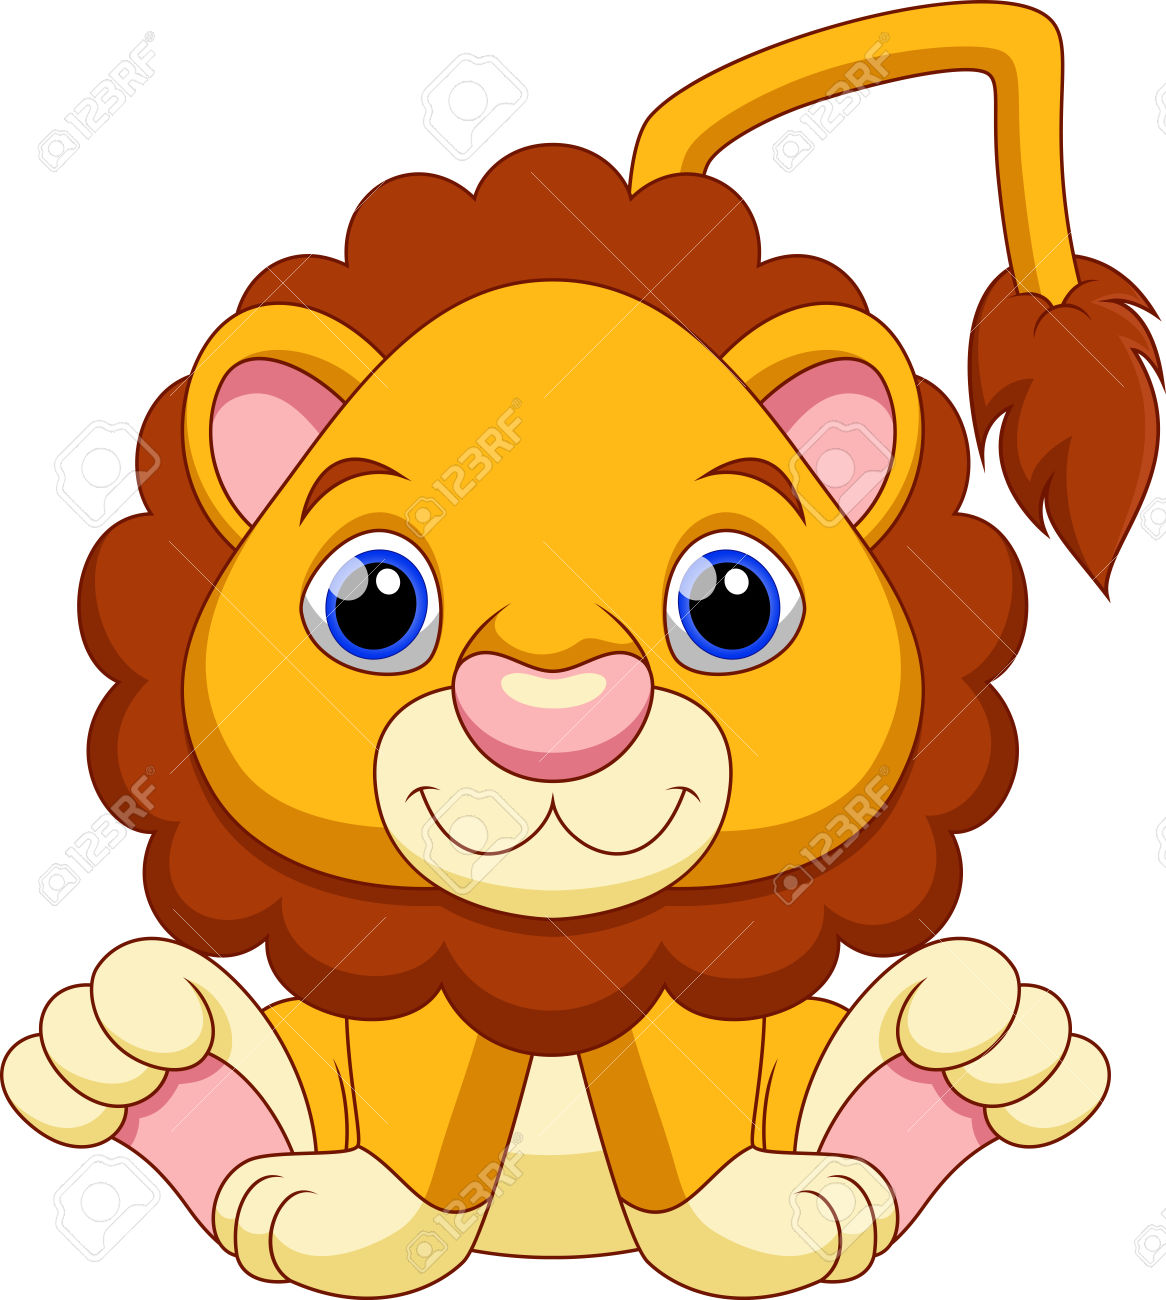 lion lamb clipart at getdrawings com free for personal use lion rh getdrawings com lion clip art pictures lion clip art pictures